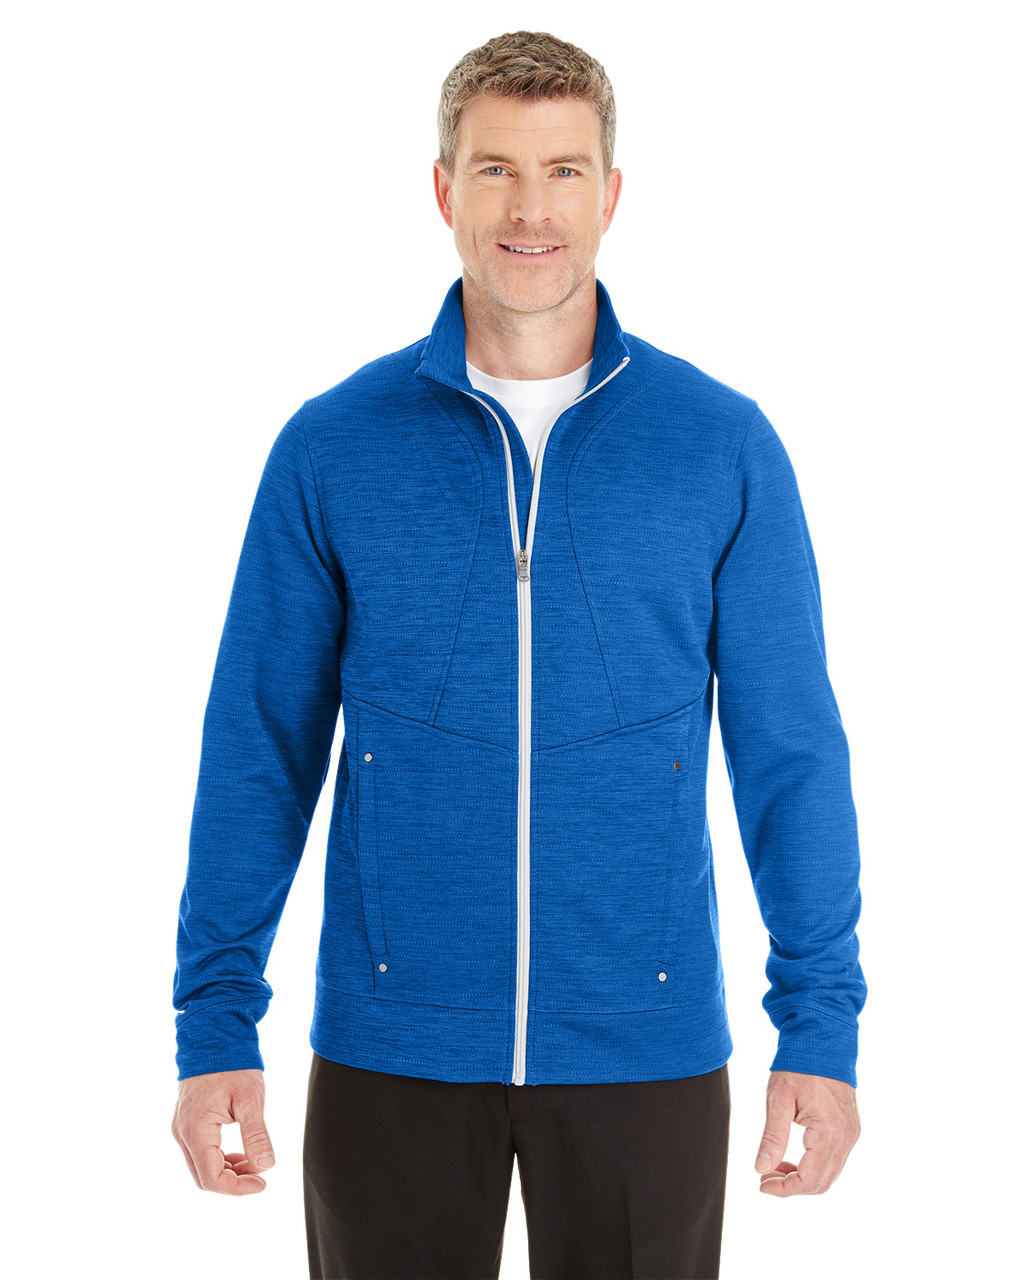 Blue - North End Men's Amplify Melange Fleece Jacket | Blankclothing.ca